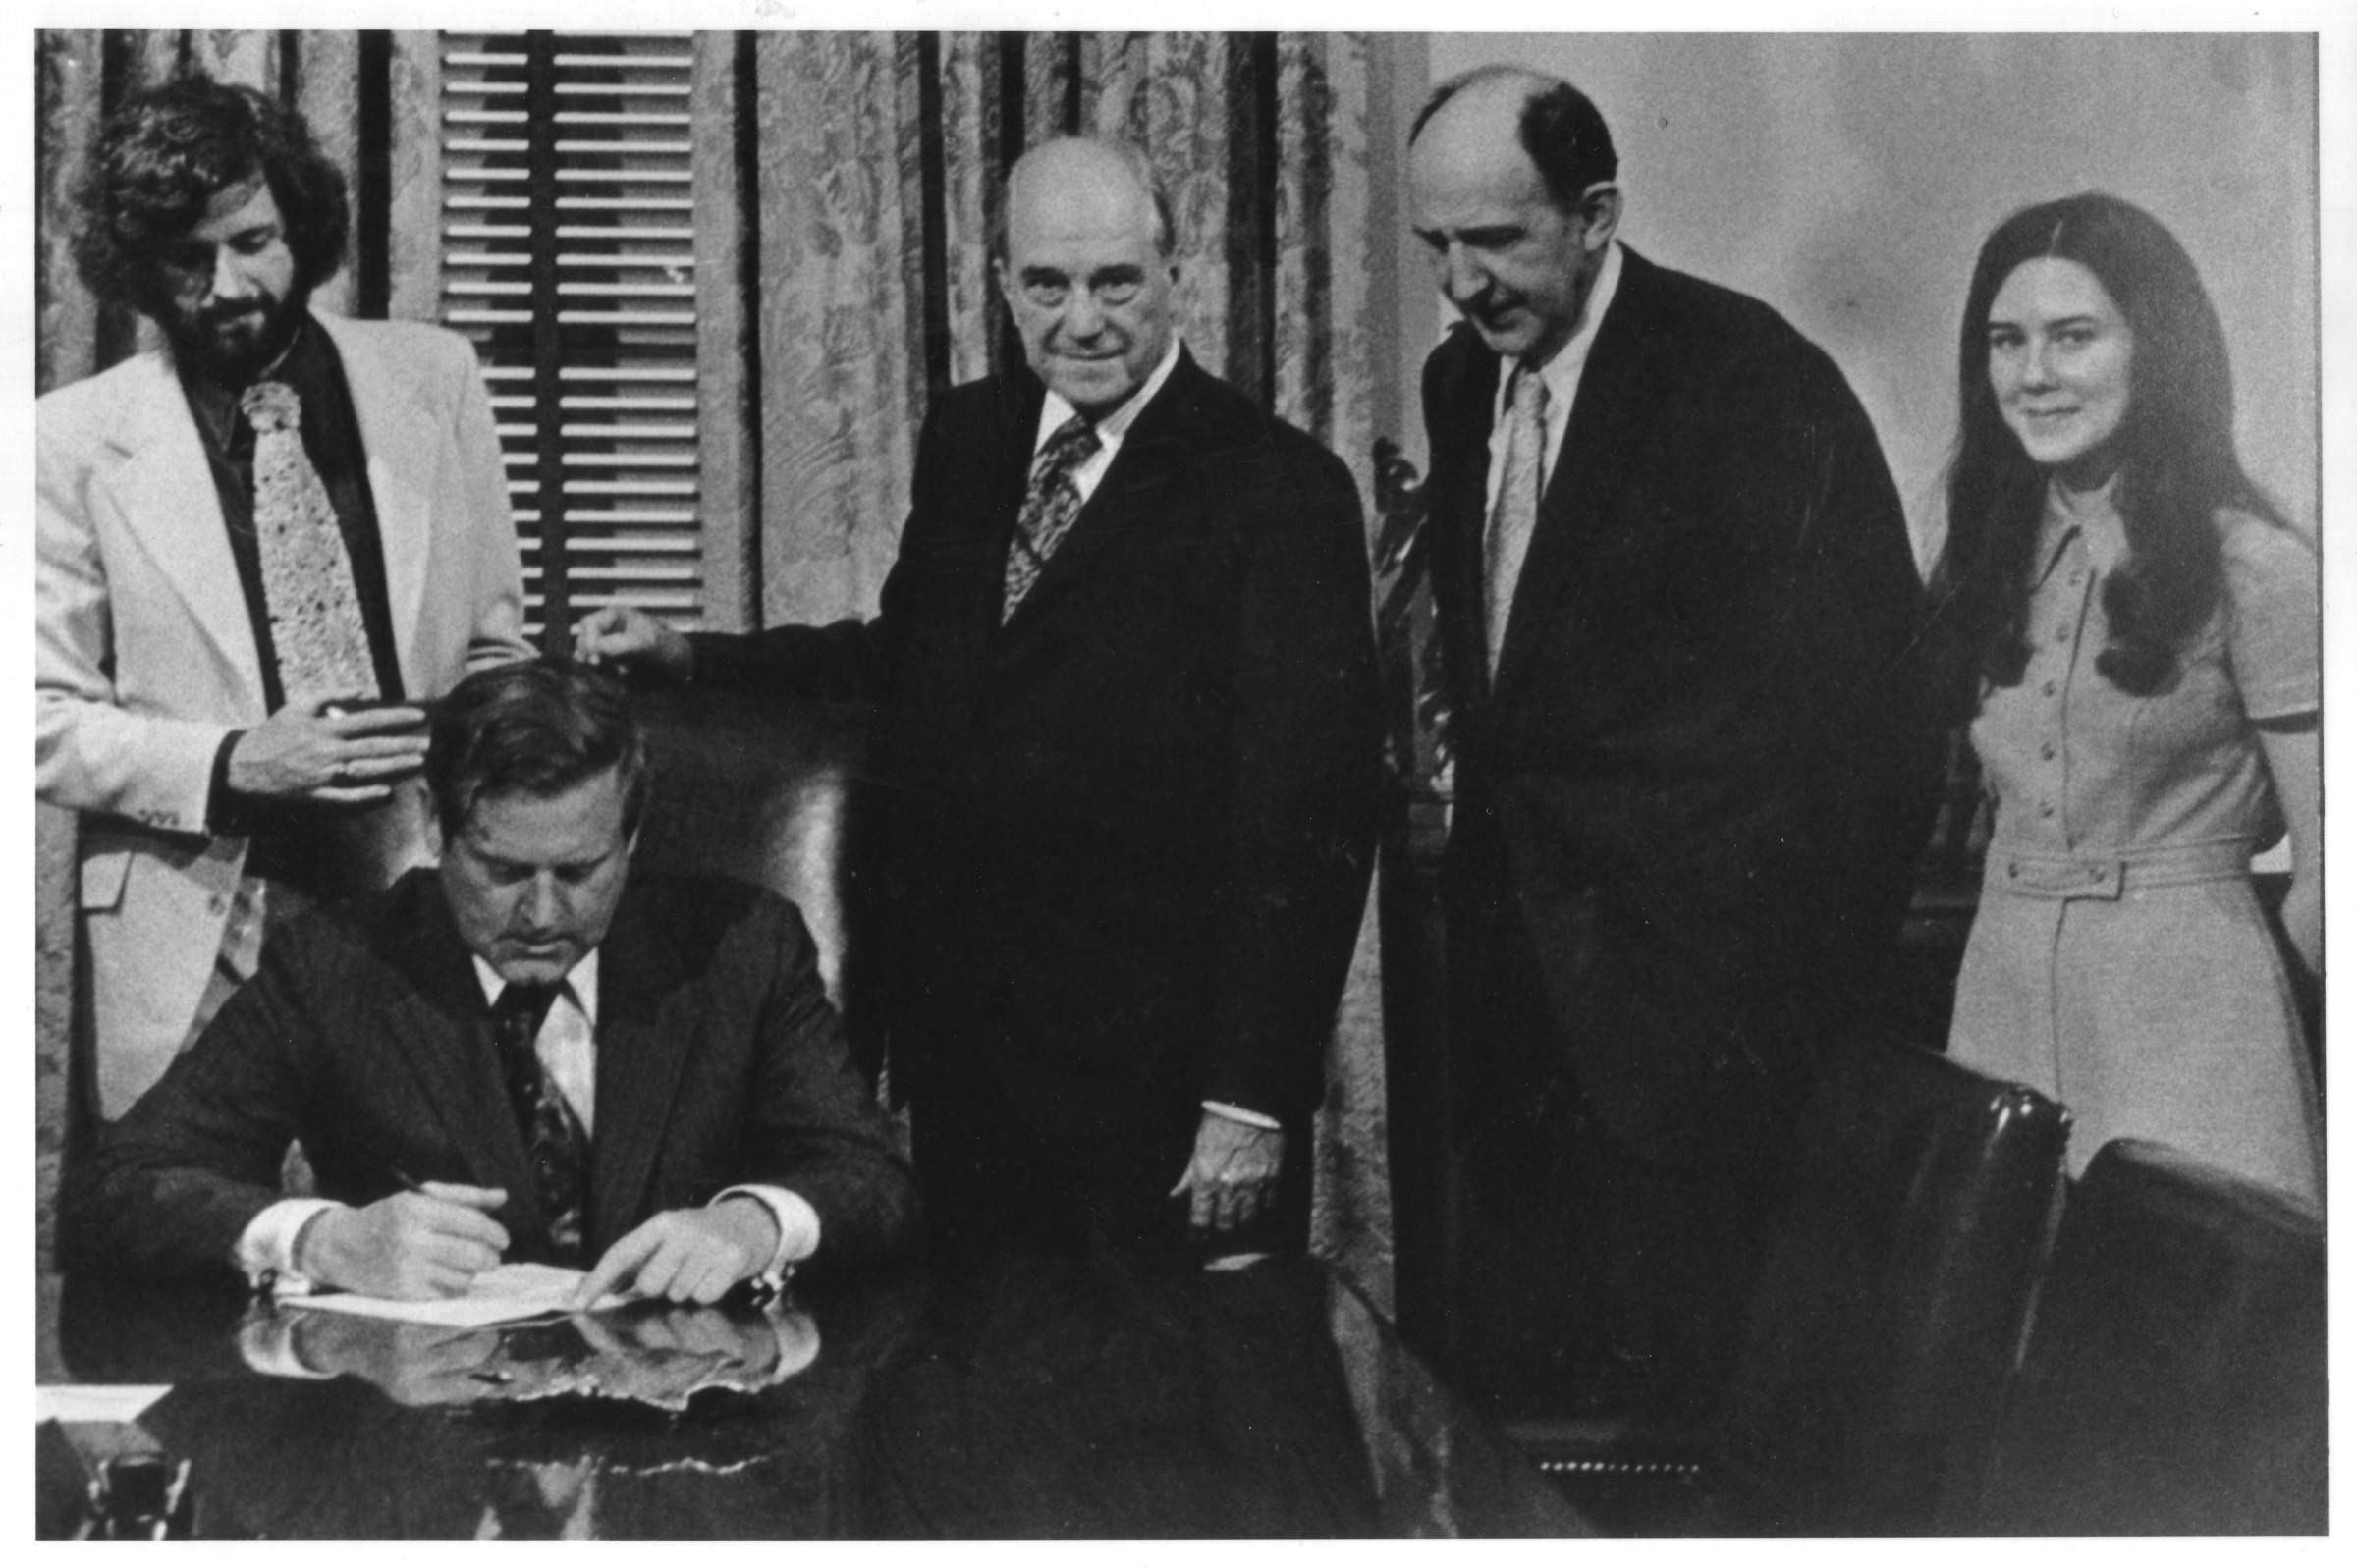 Governor A. Linwood Holton signs H-210 separating George Mason College from the University of Virginia, April 7, 1972